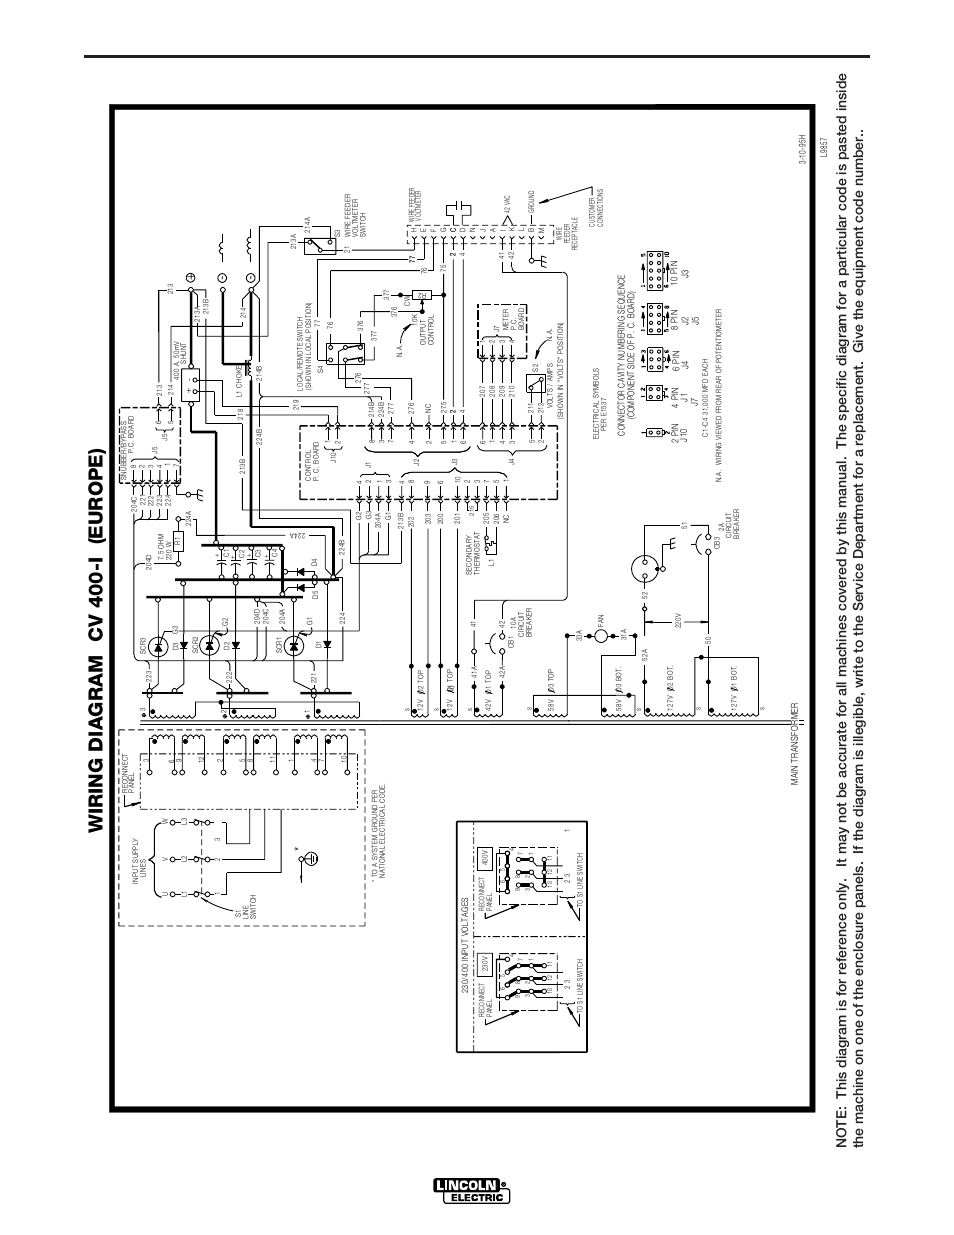 Lincoln Cv400 Wiring Diagram Real 1999 Navigator Window Switch Diagrams Cv 400 I Europe 1998